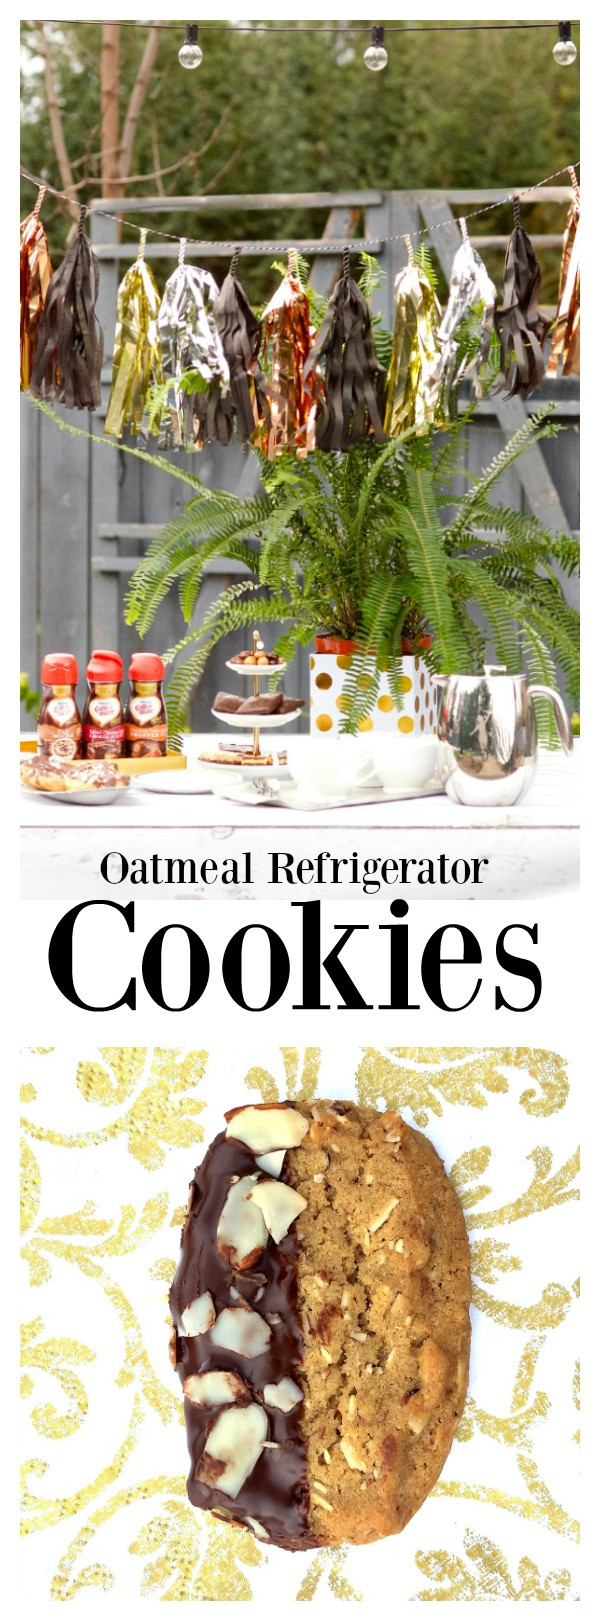 Refrigerator Oatmeal Cookies